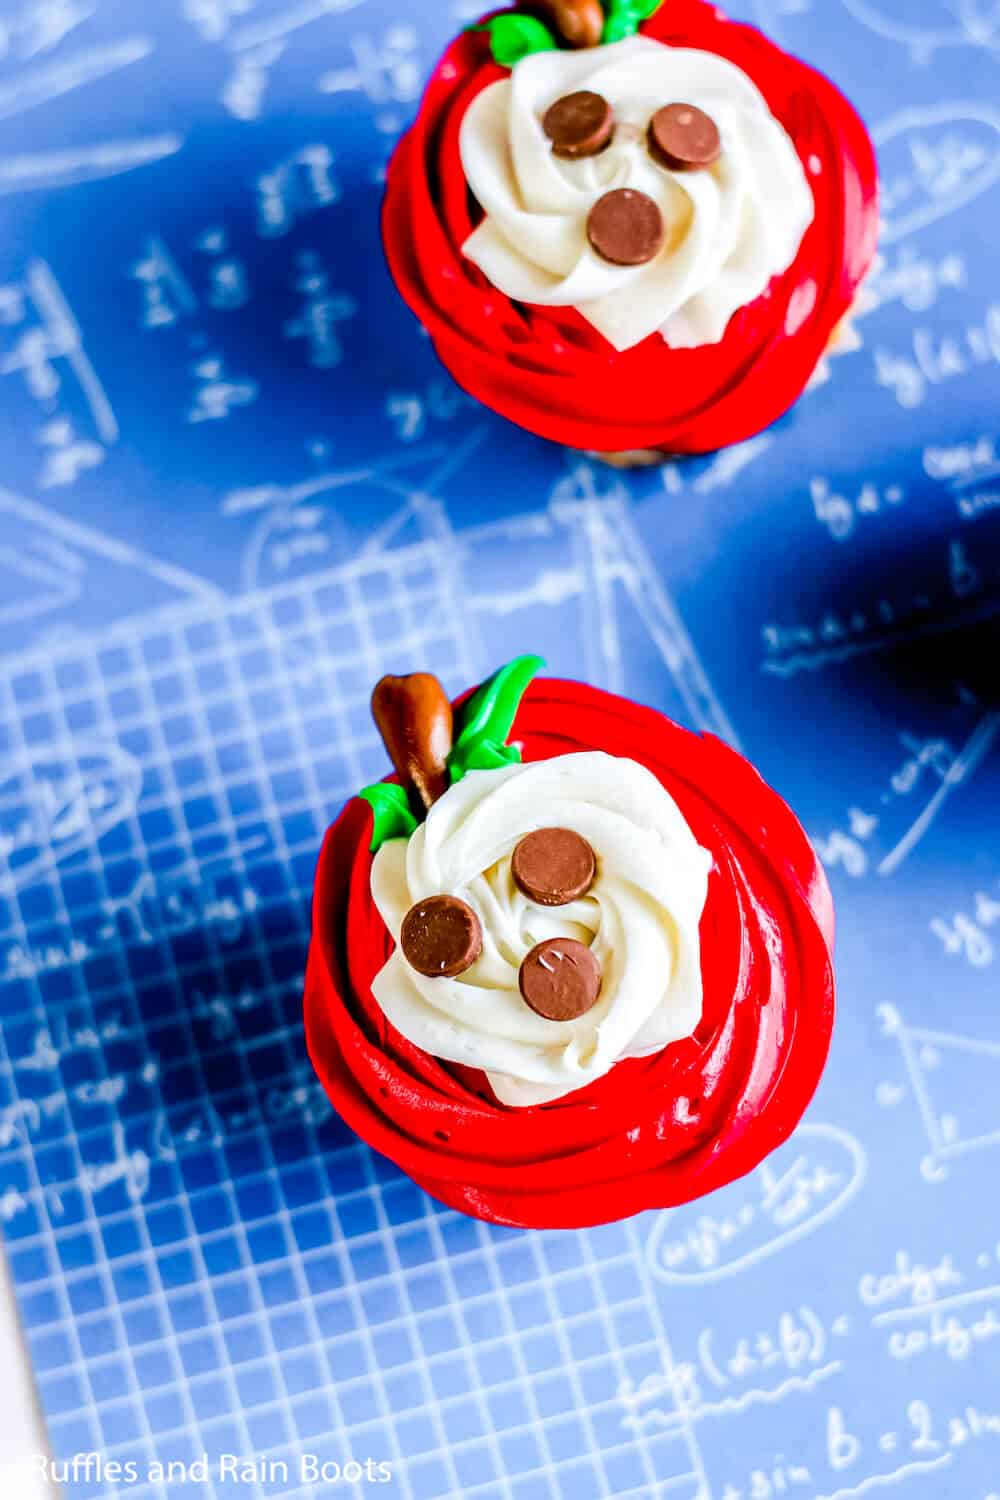 easy cupcake decorating idea for apple cupcakes